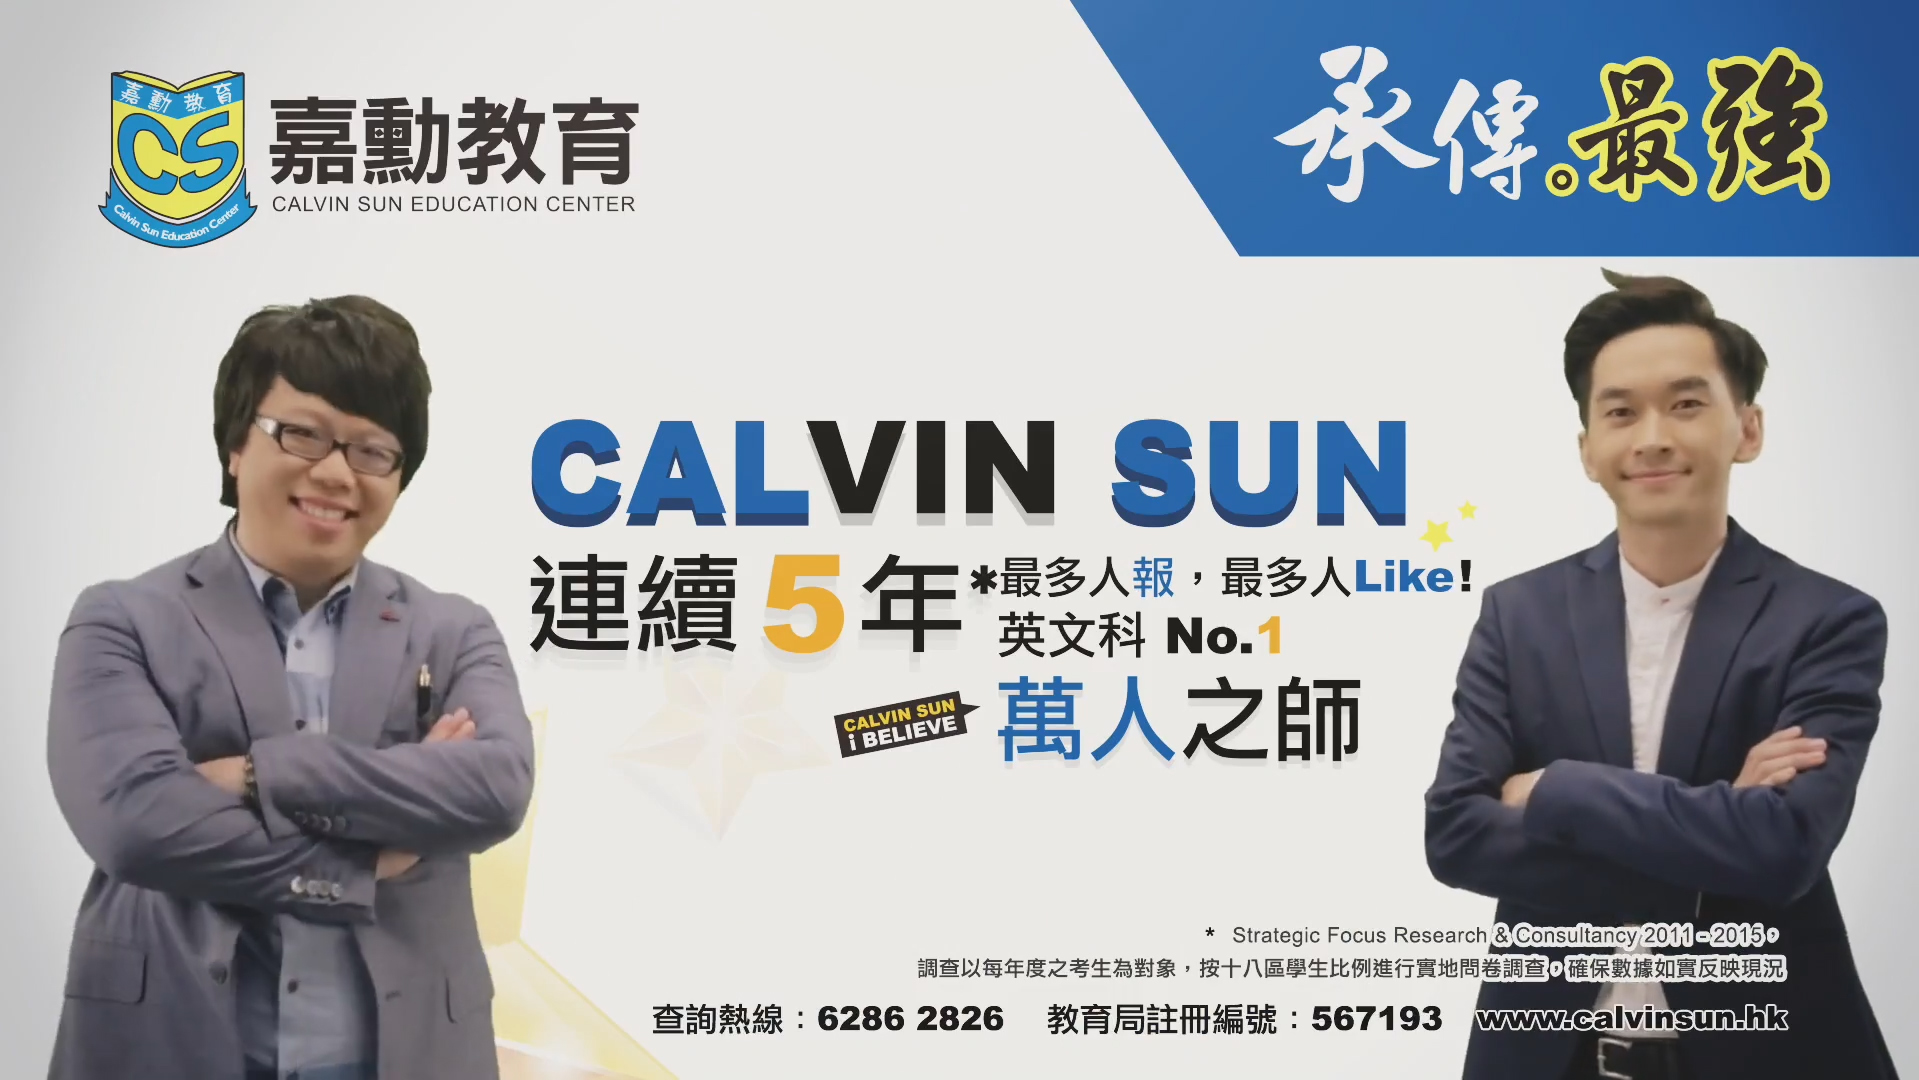 Calvin Sun Education Center Promo